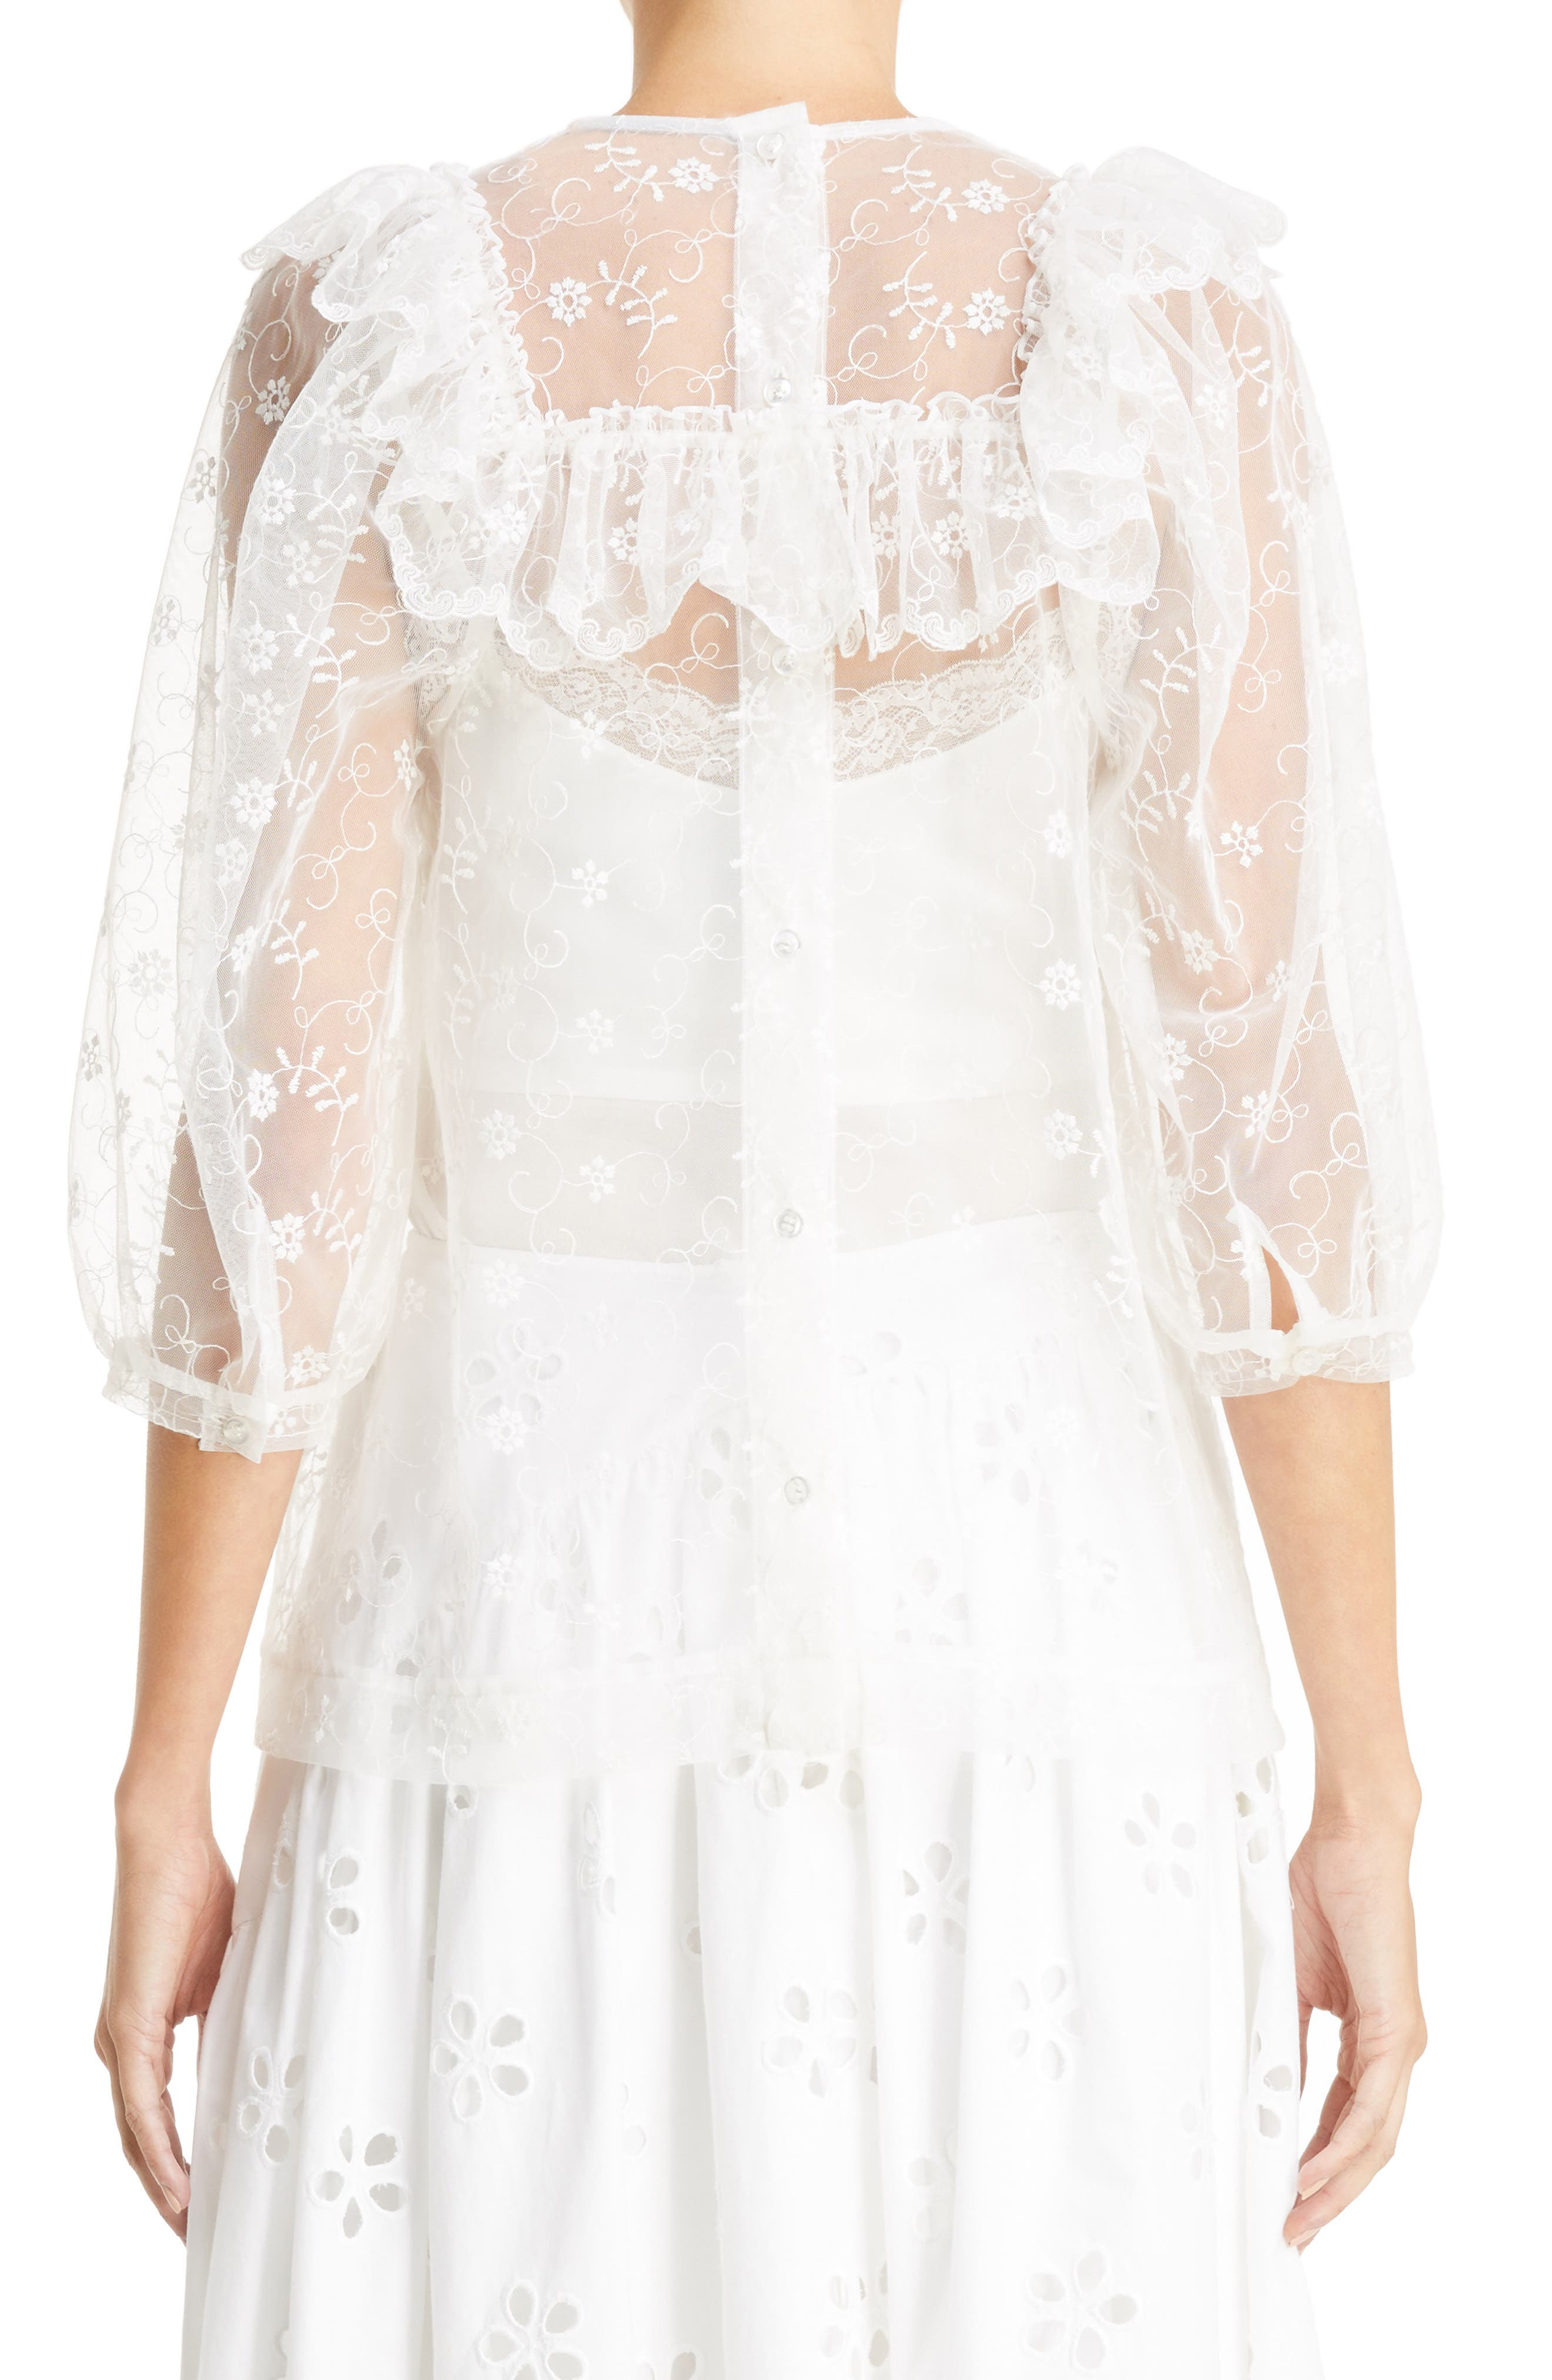 Frilled Bib Embroidered Tulle Top,                             Alternate thumbnail 2, color,                             900